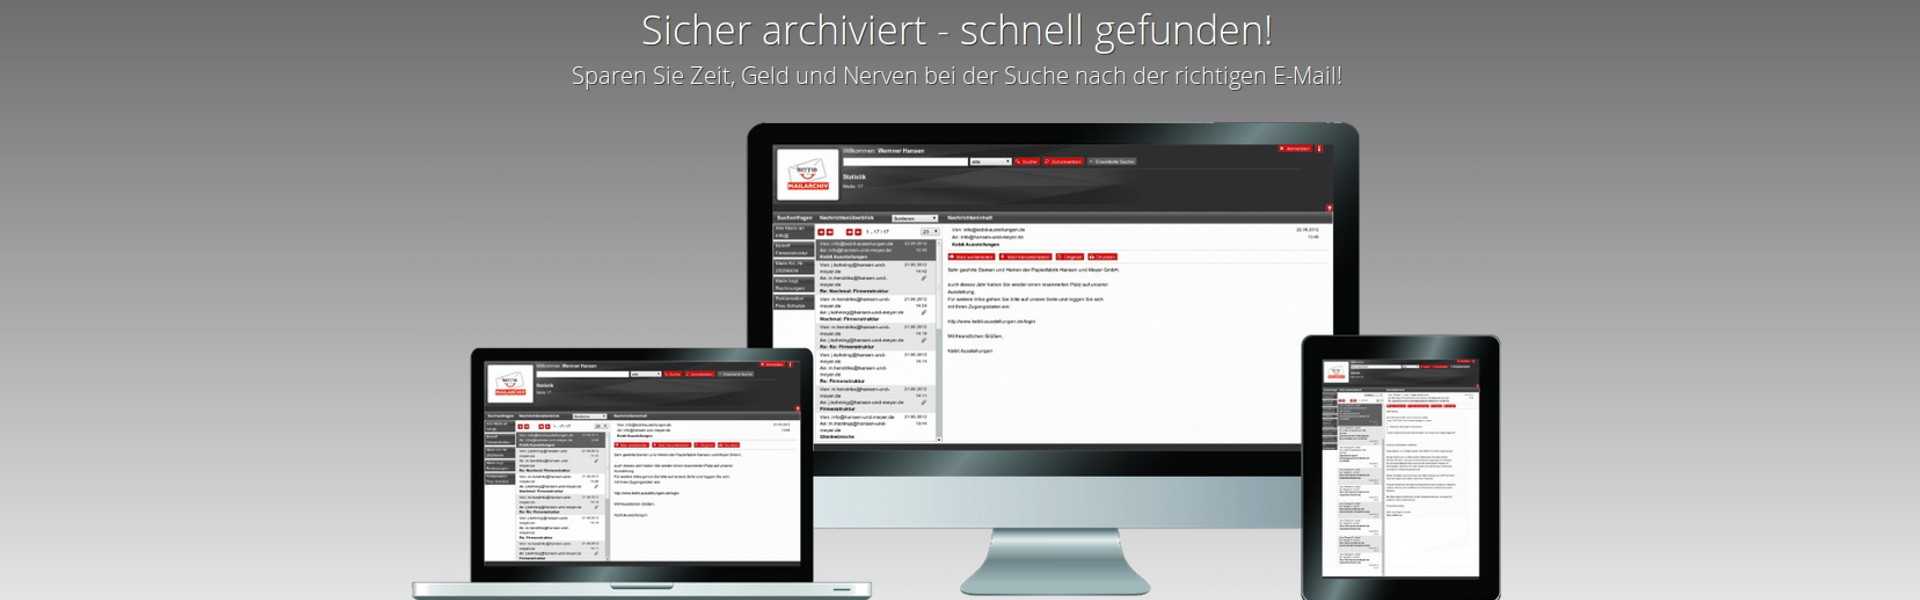 Benno MailArchiv auf iMac, MacBook, iPad